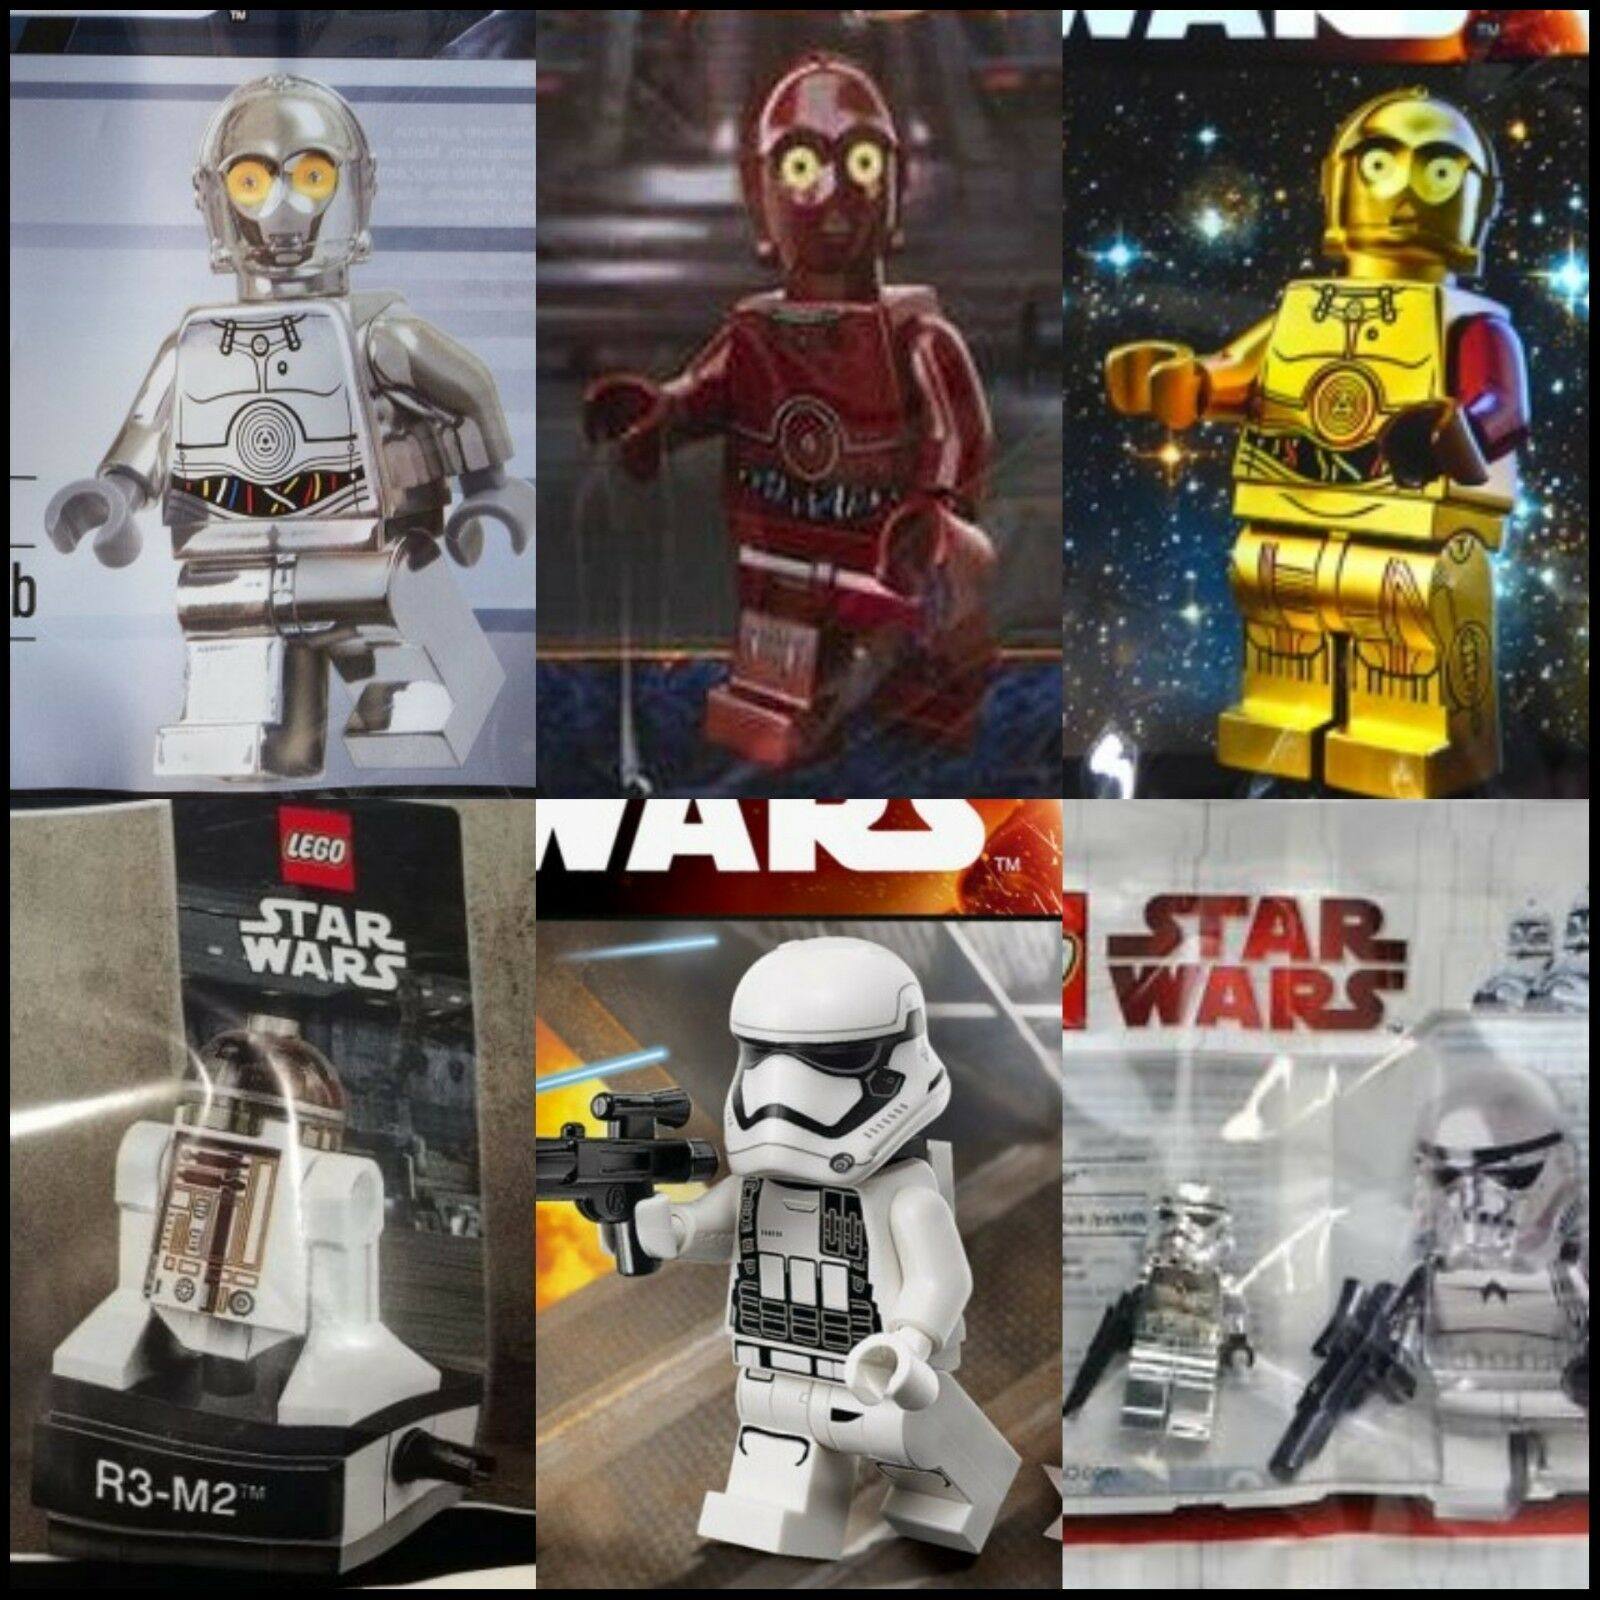 LEGO STAR WARS Lot Of x21 x21 x21 New Mint Factory Sealed Polybags Exclusive Promo Ann. 033a45